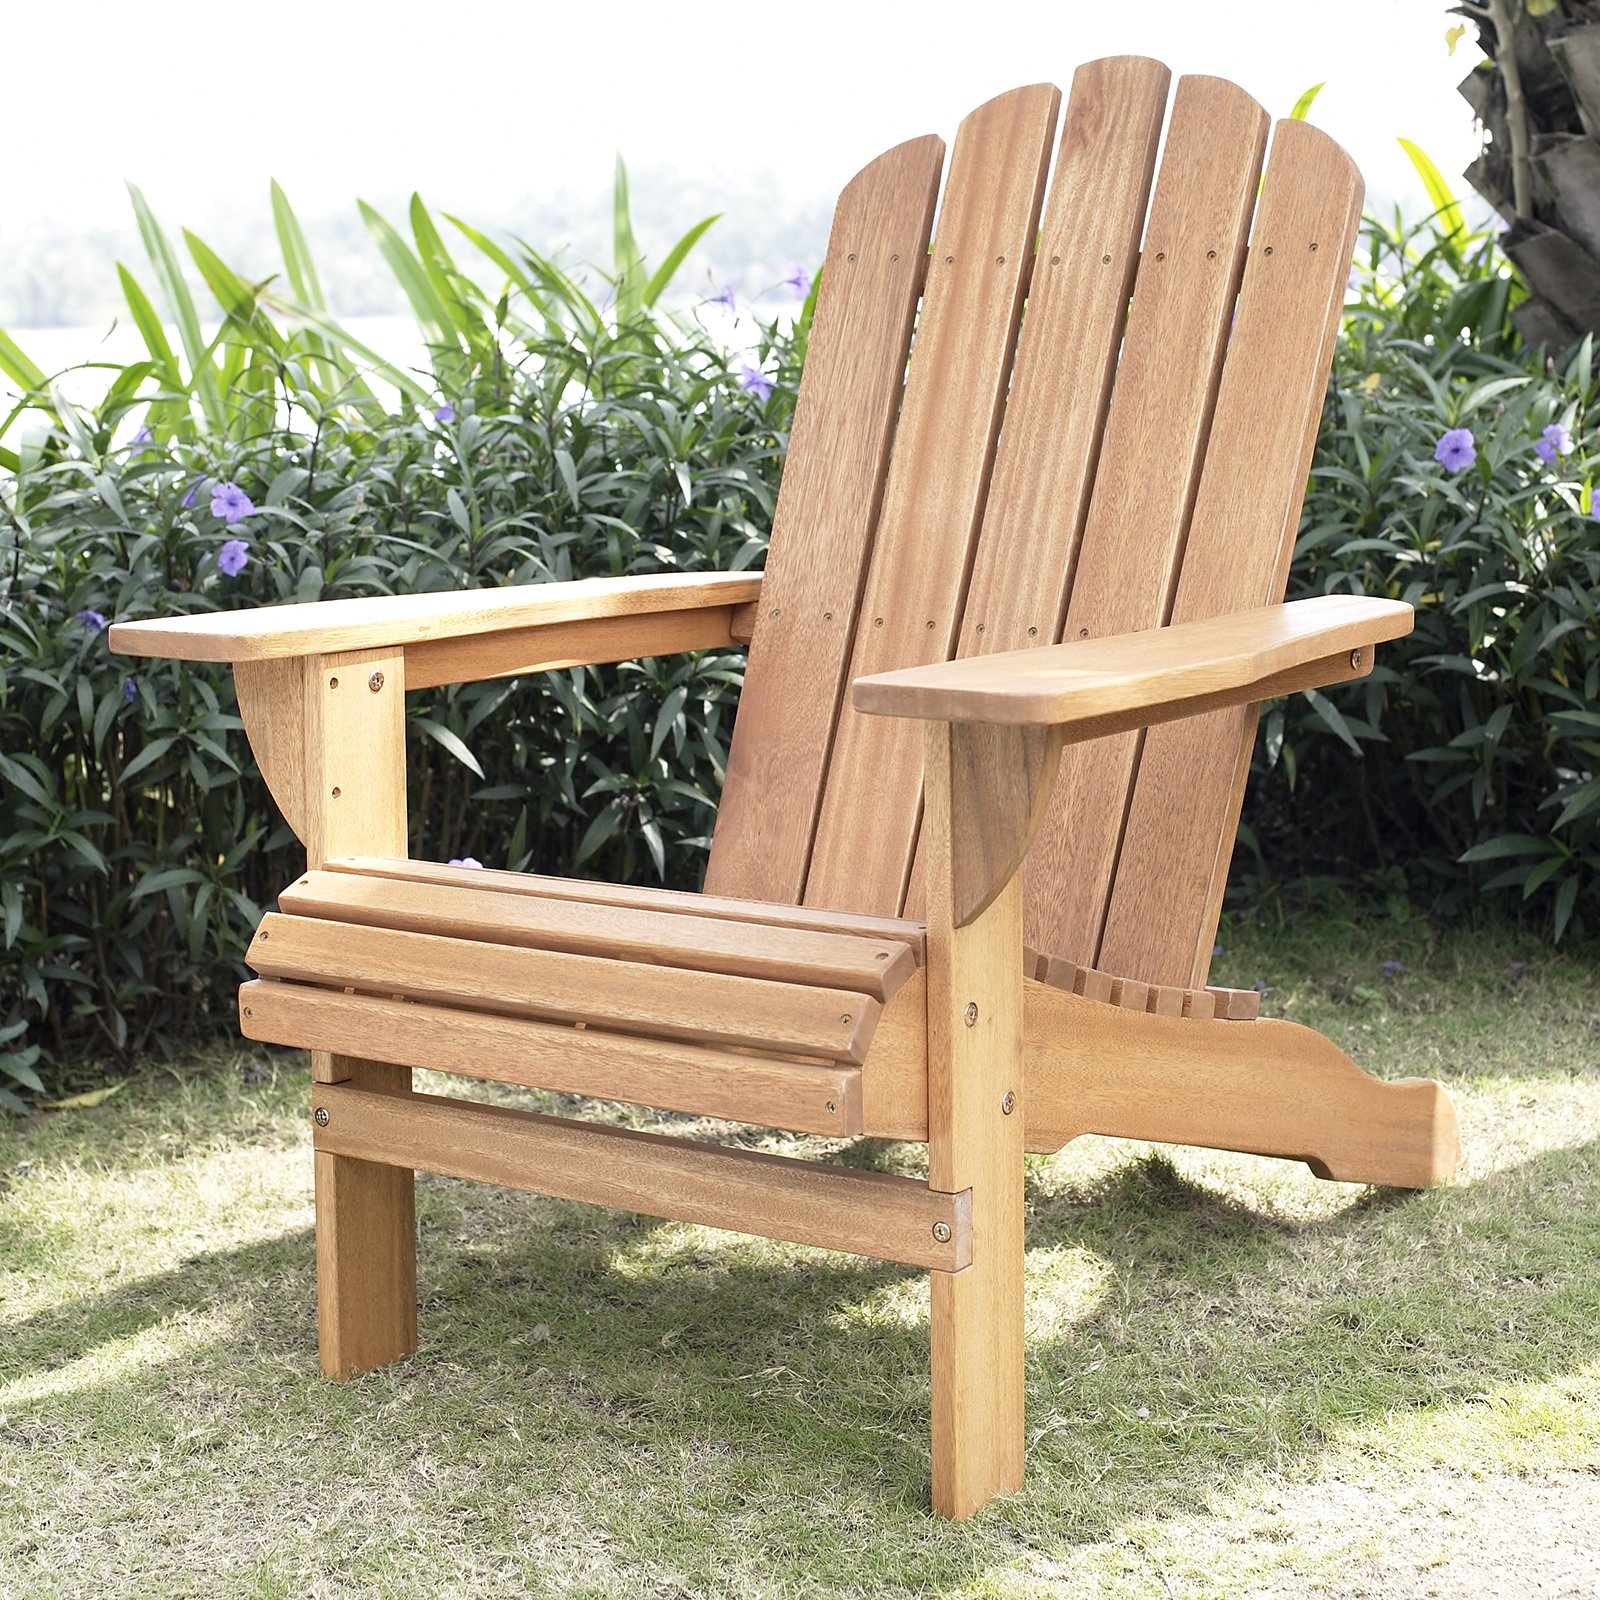 Belham Living Shoreline Adirondack Chair - Natural